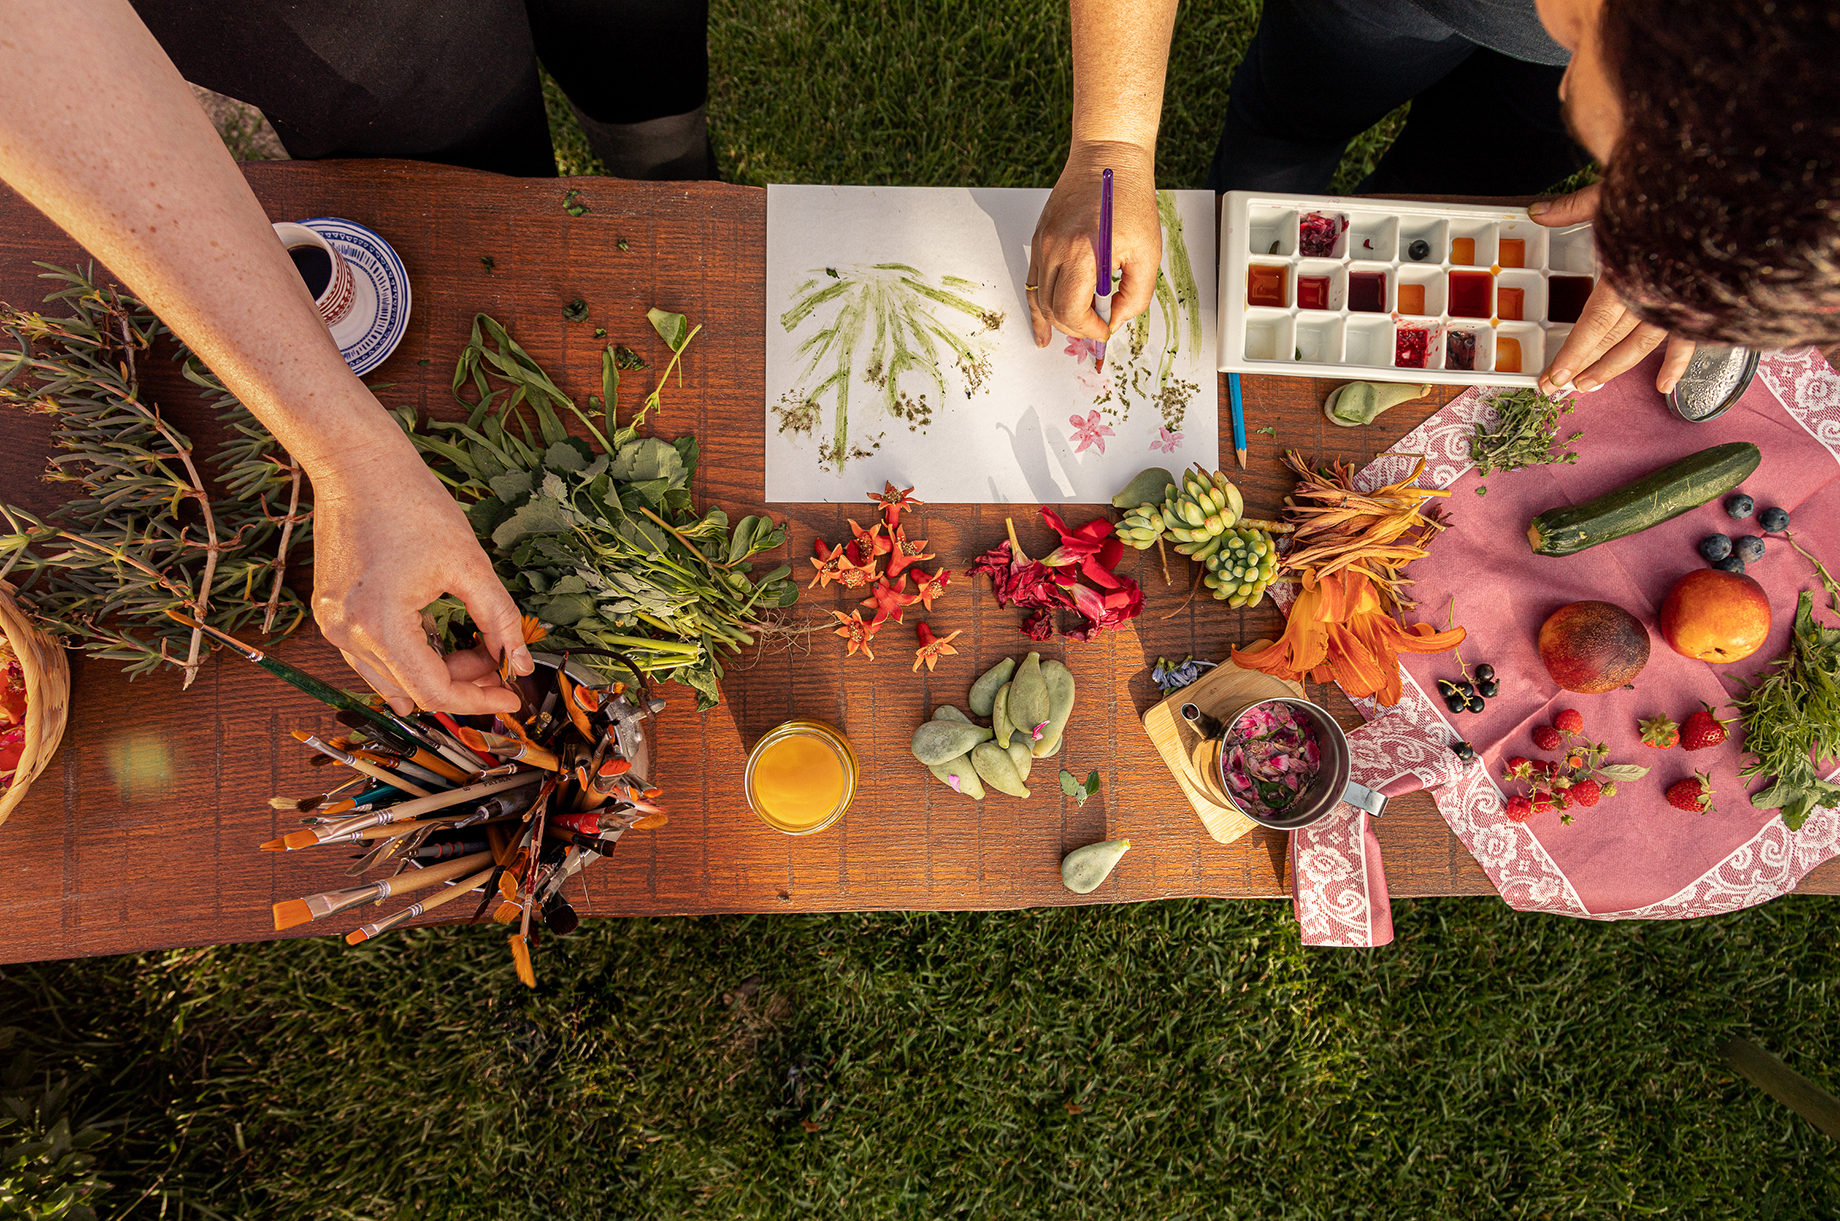 Art workshop with natural colors with Alessandra Pala shot by Alberto Bernasconi for Enjoy magazine